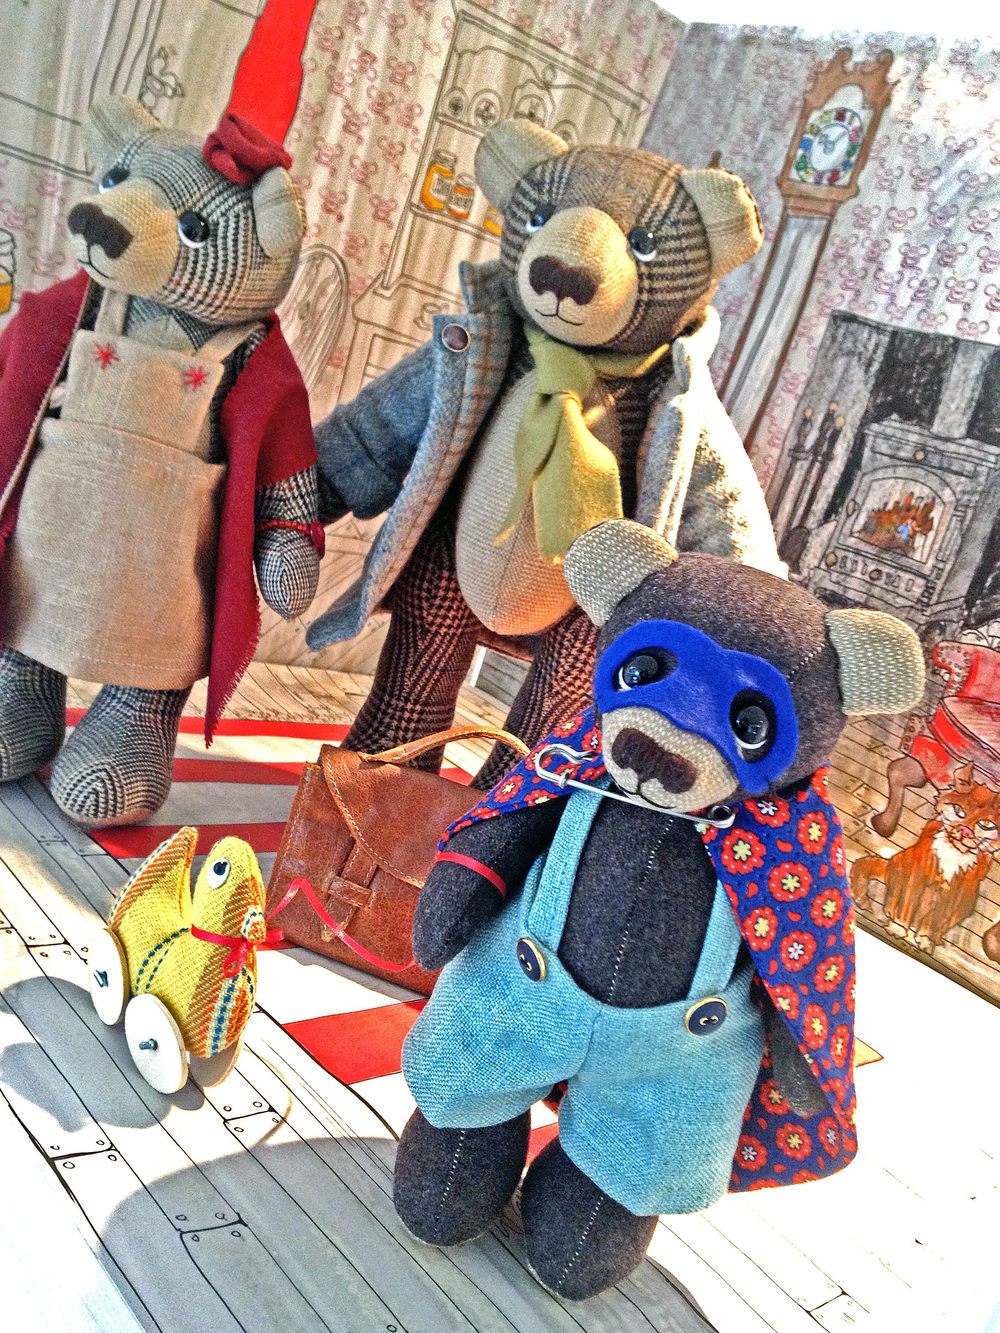 OOAK artist teddy bear family in British tweed fabrics.